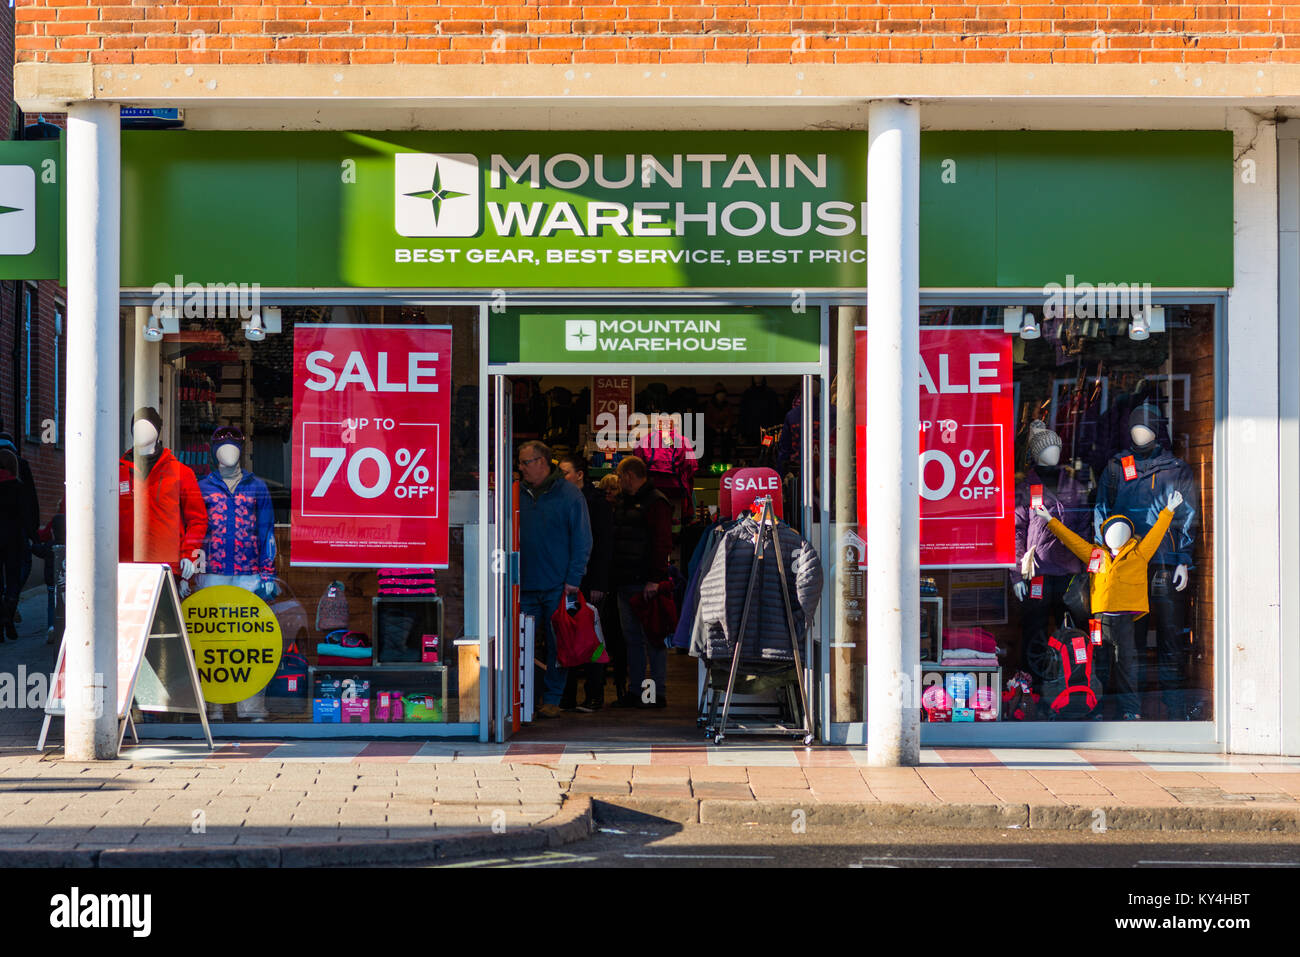 Mountain Warehouse storefront in Bury St Edmunds, Suffolk, England, UK. - Stock Image